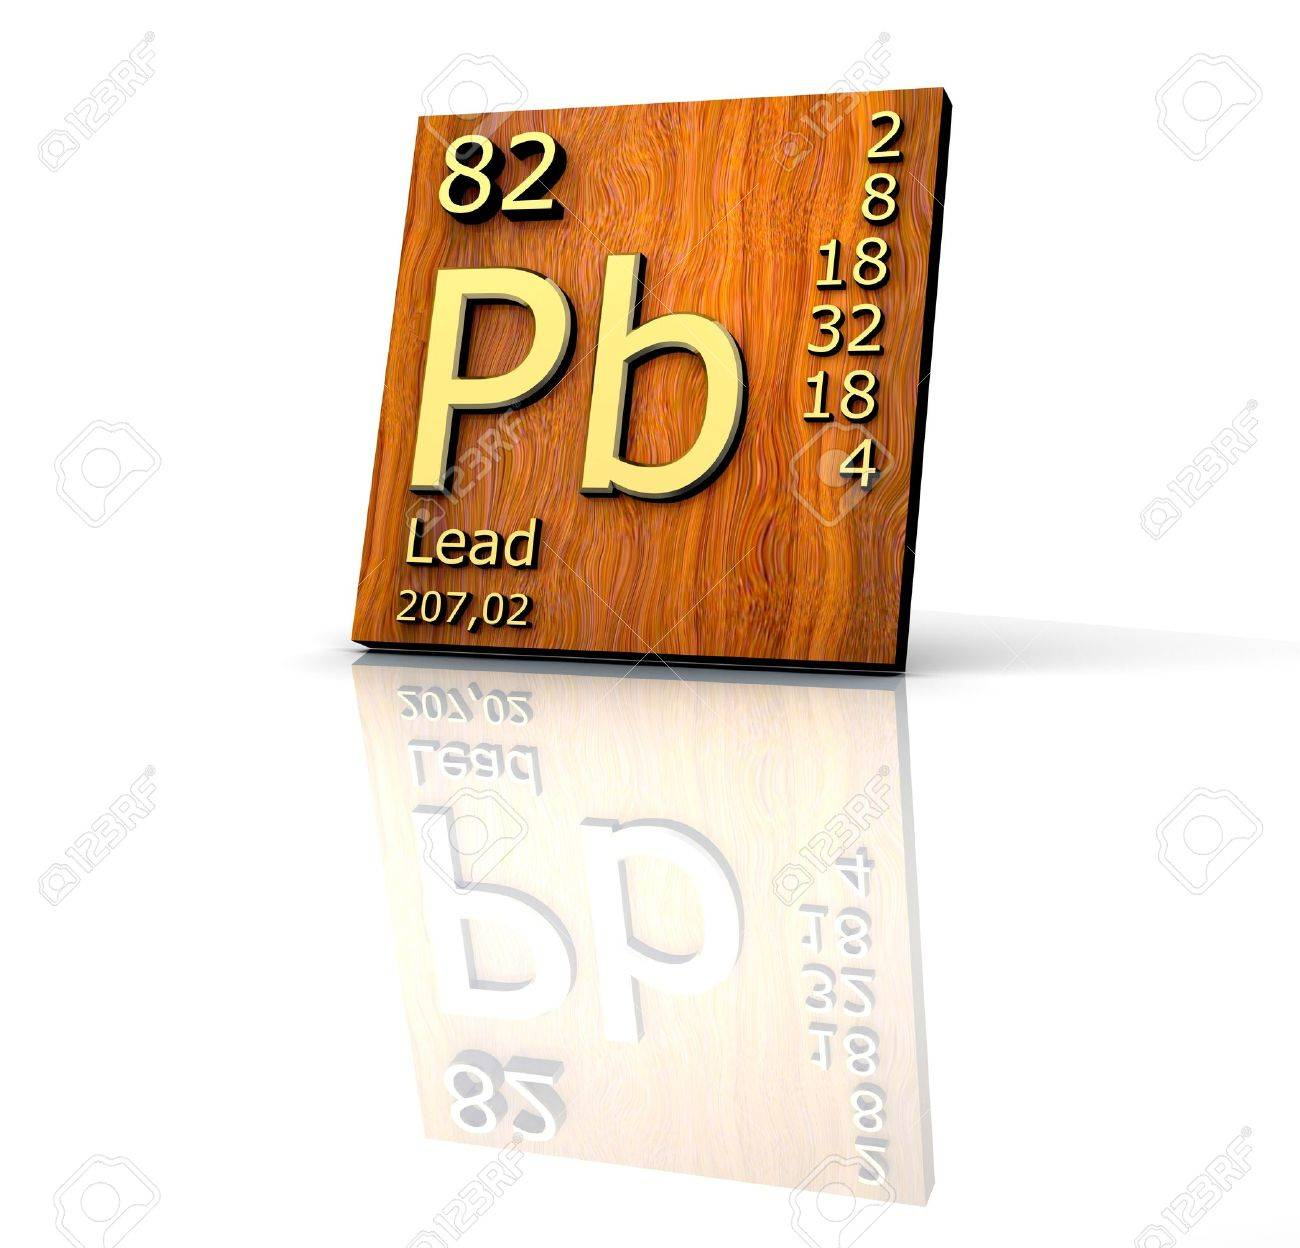 Led periodic table image collections periodic table images led periodic table gallery periodic table images lead periodic table image collections periodic table images lead gamestrikefo Gallery